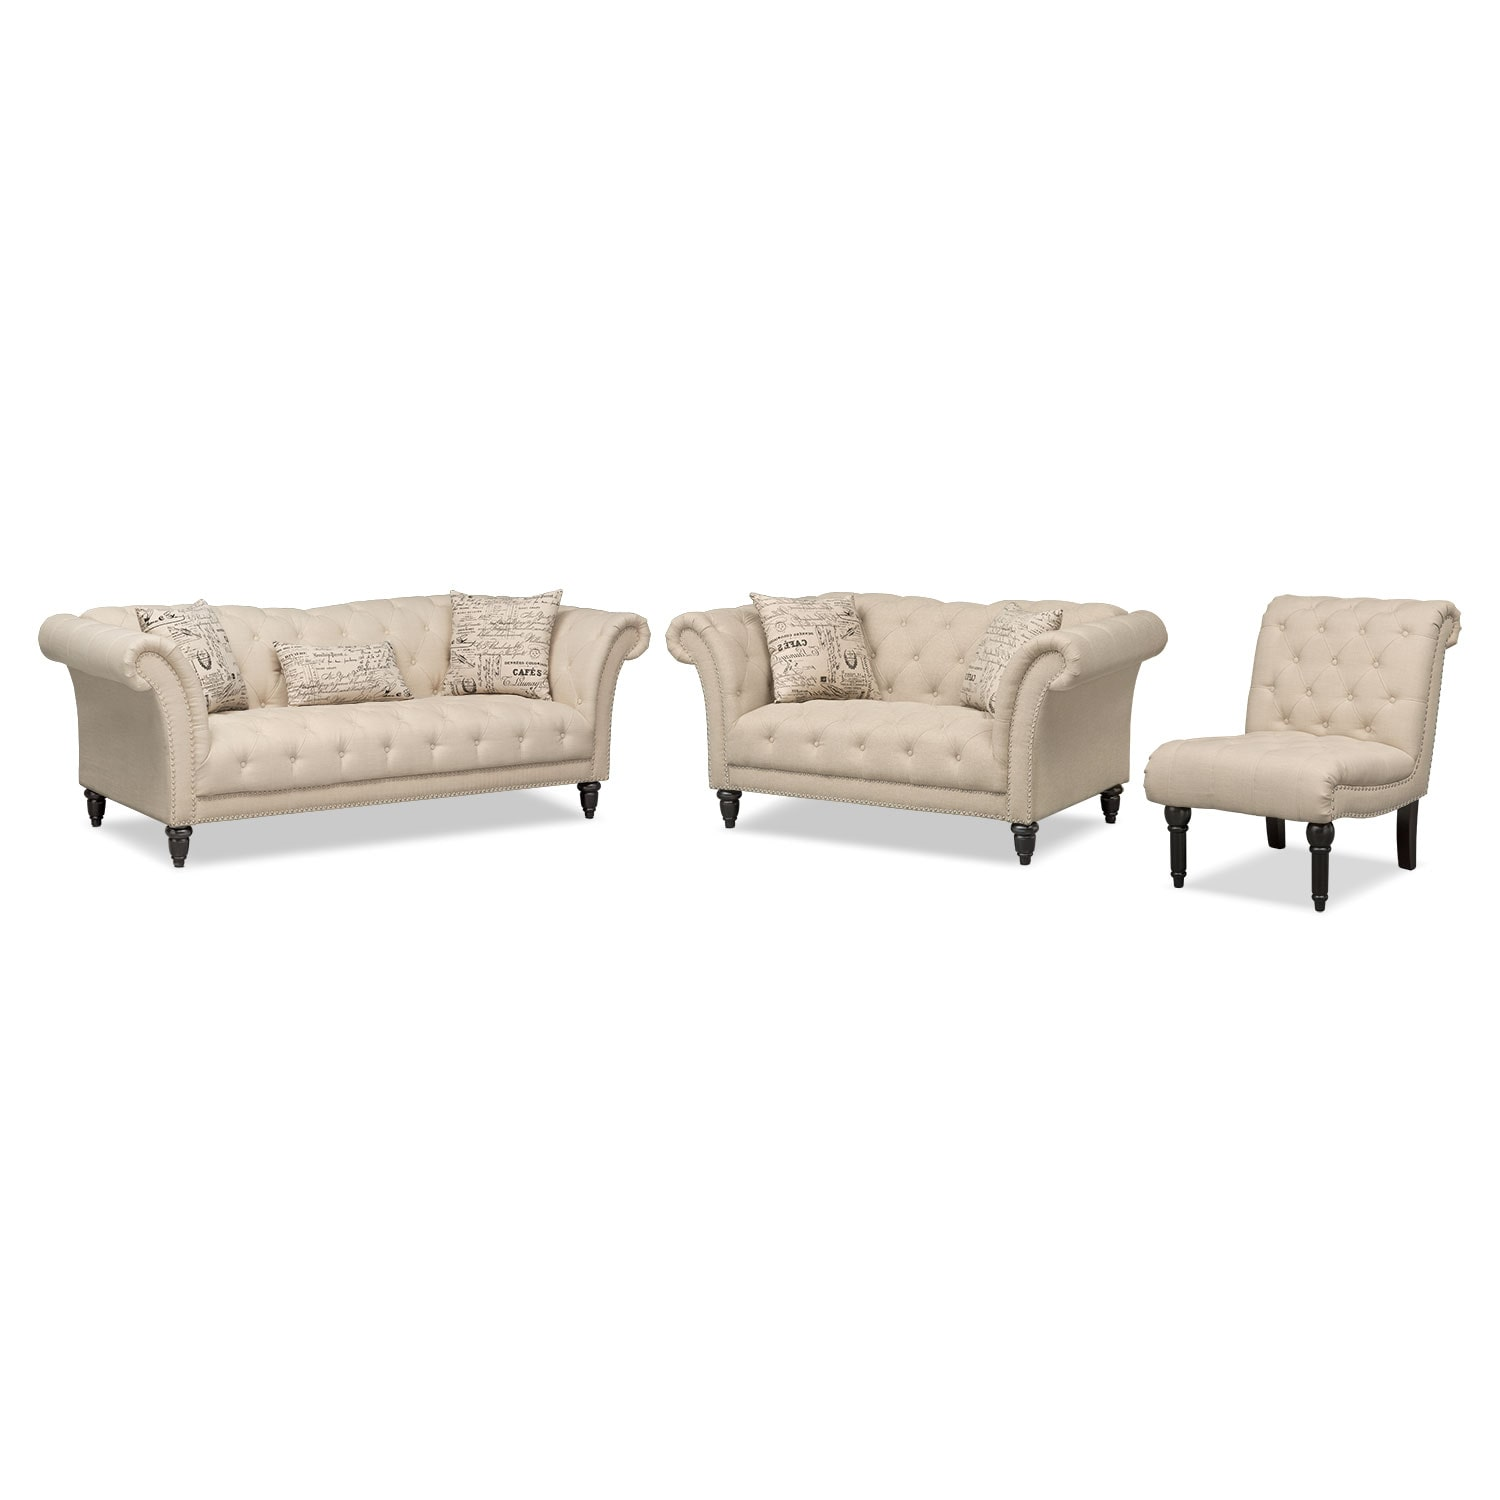 Marisol Sofa, Loveseat And Armless Chair Set   Beige